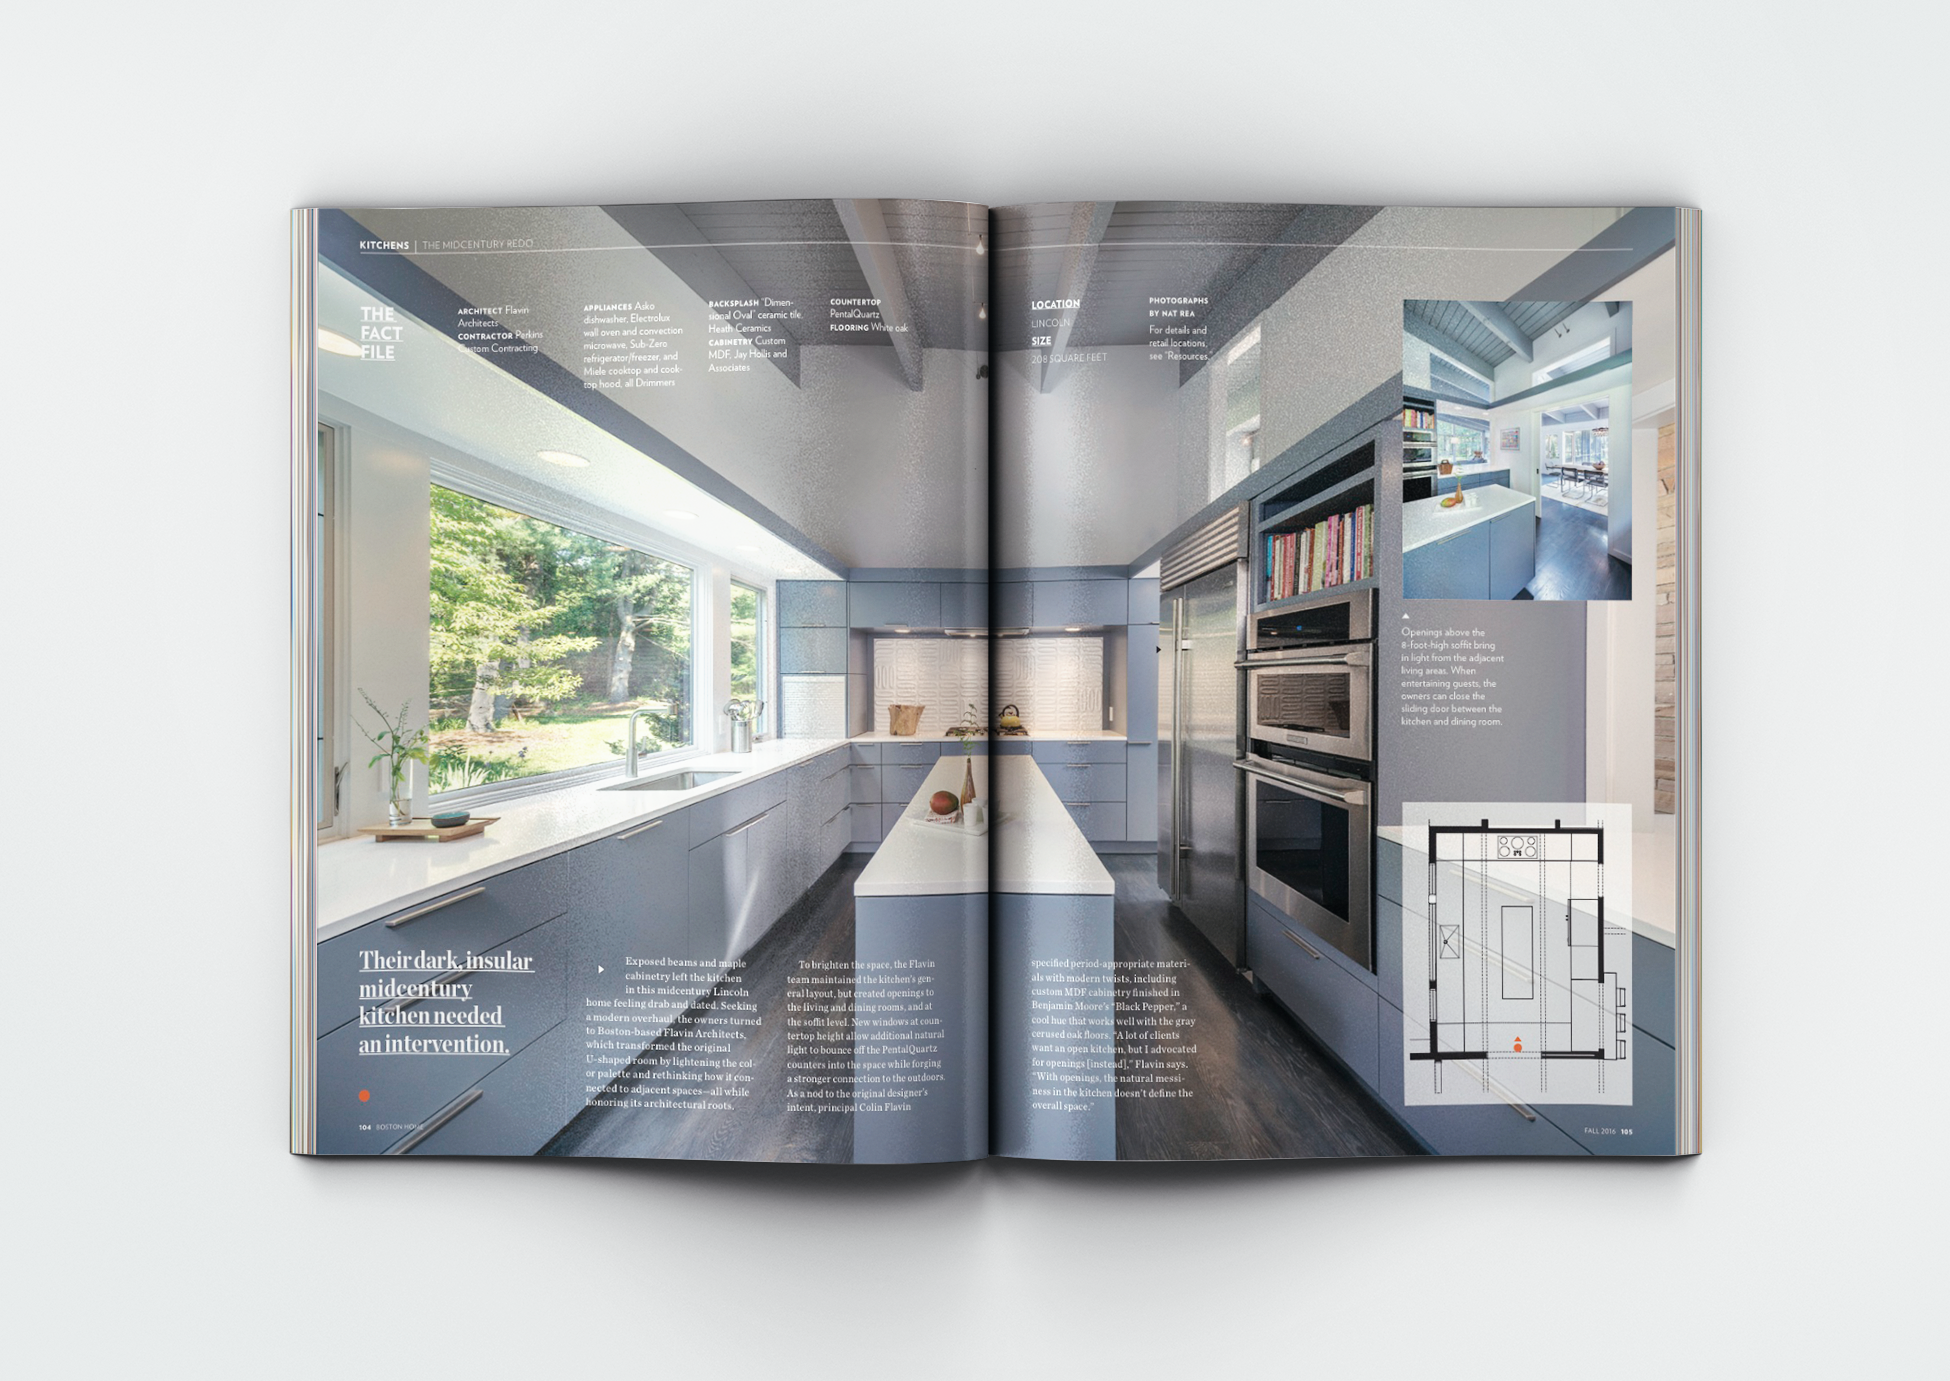 home_kitchens16_5 copy.png